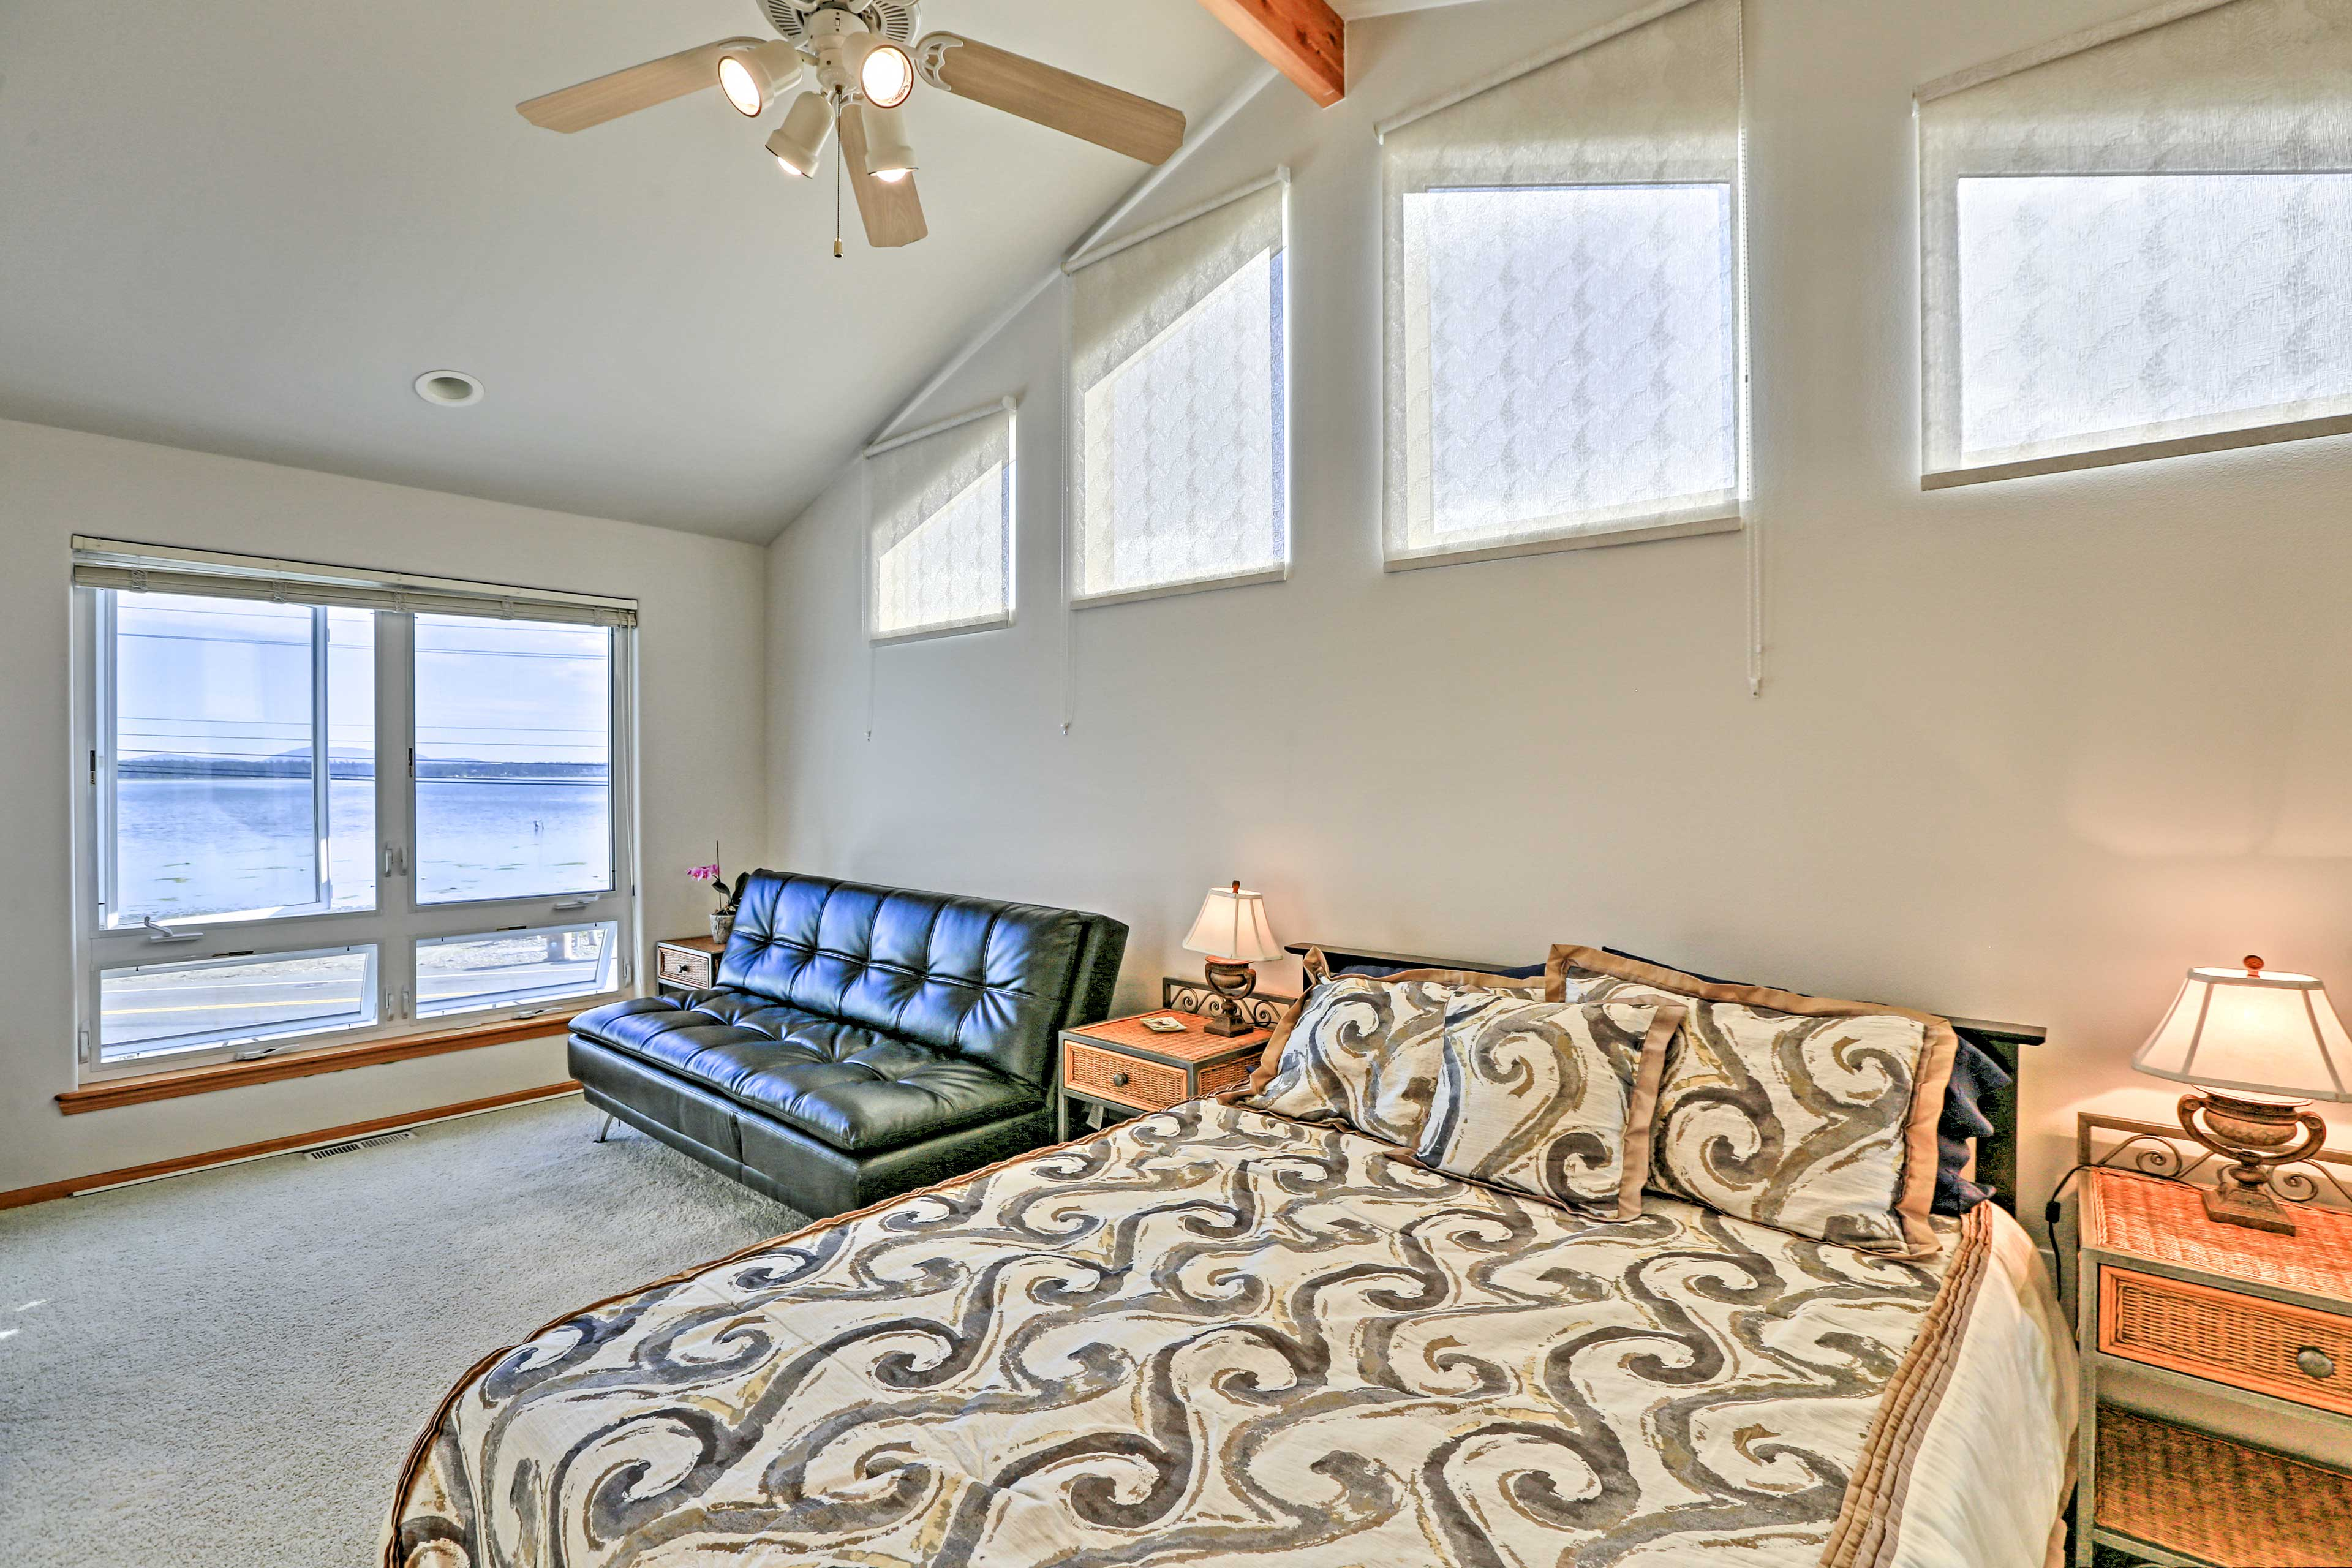 The bedroom's futon allows for additional sleeping space.